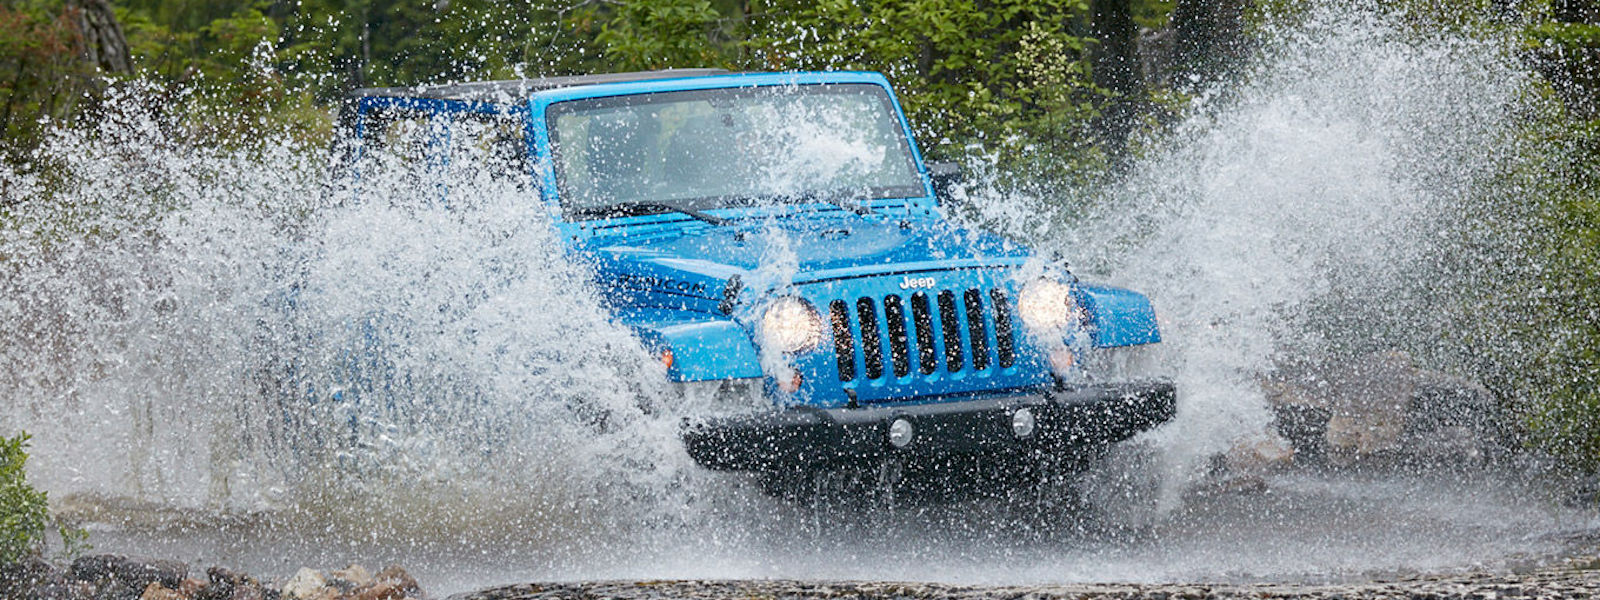 2016 Jeep Wrangler Performance Driving through water on a trail offroading – Colorado Springs, CO